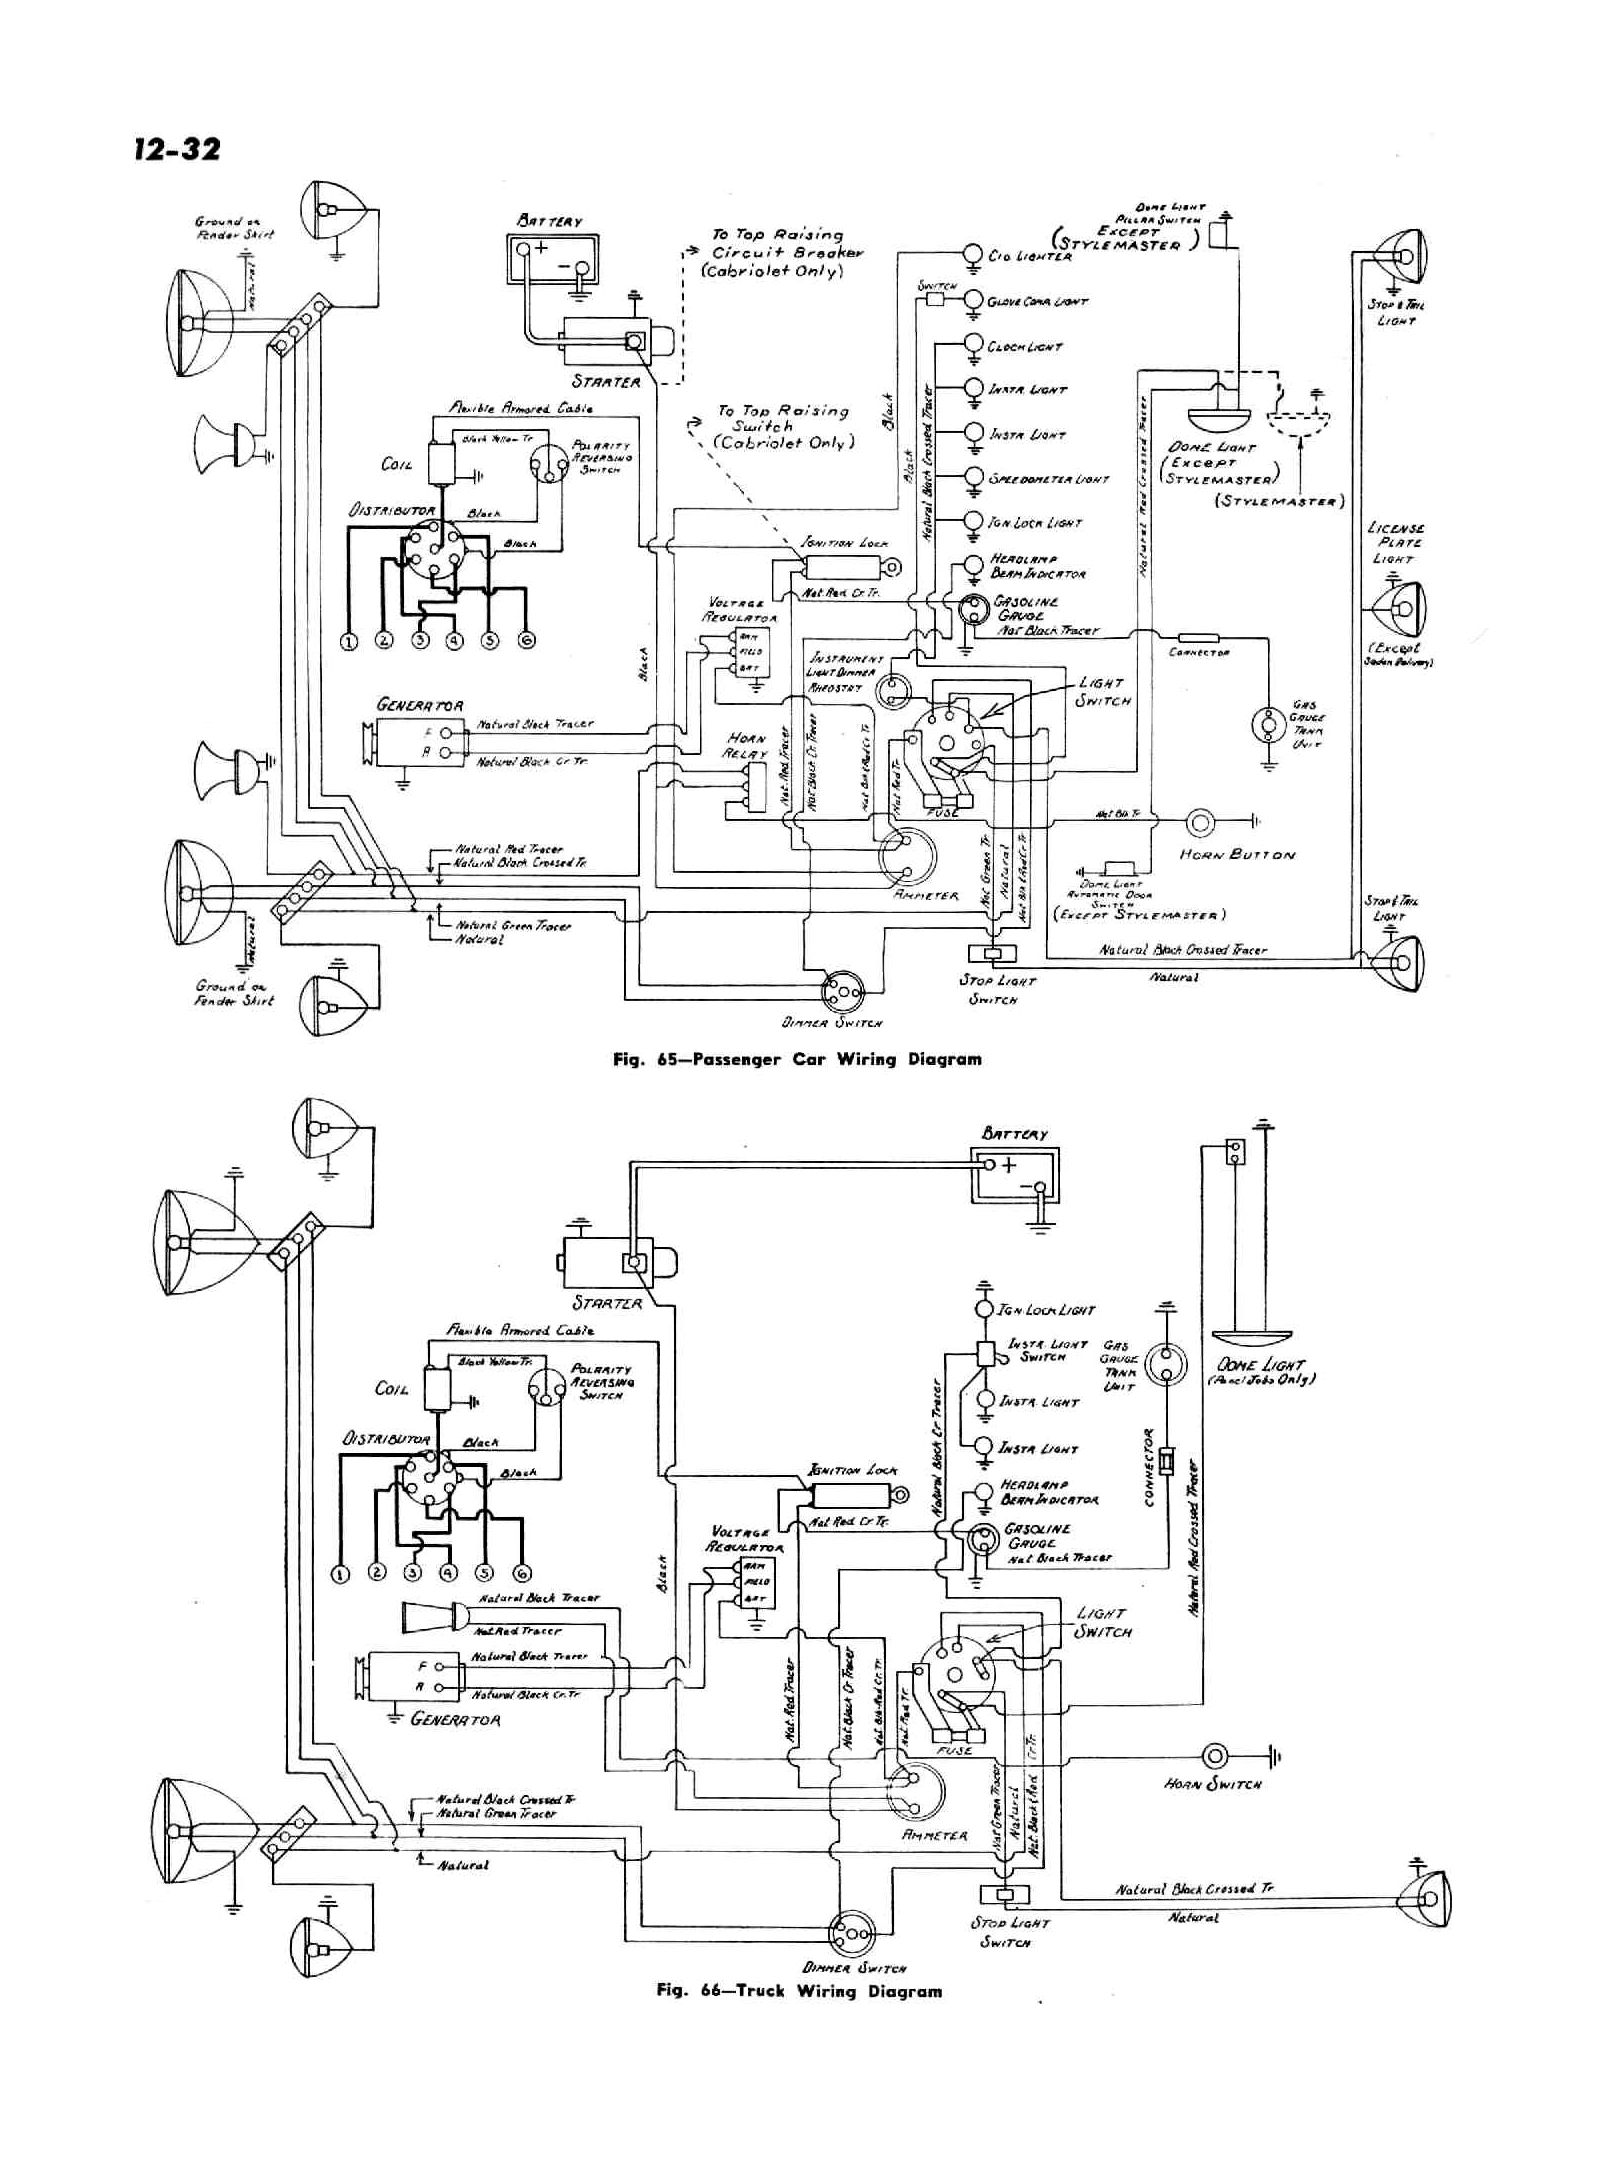 4247csm1232 chevy wiring diagrams chevy truck wiring diagram at et-consult.org